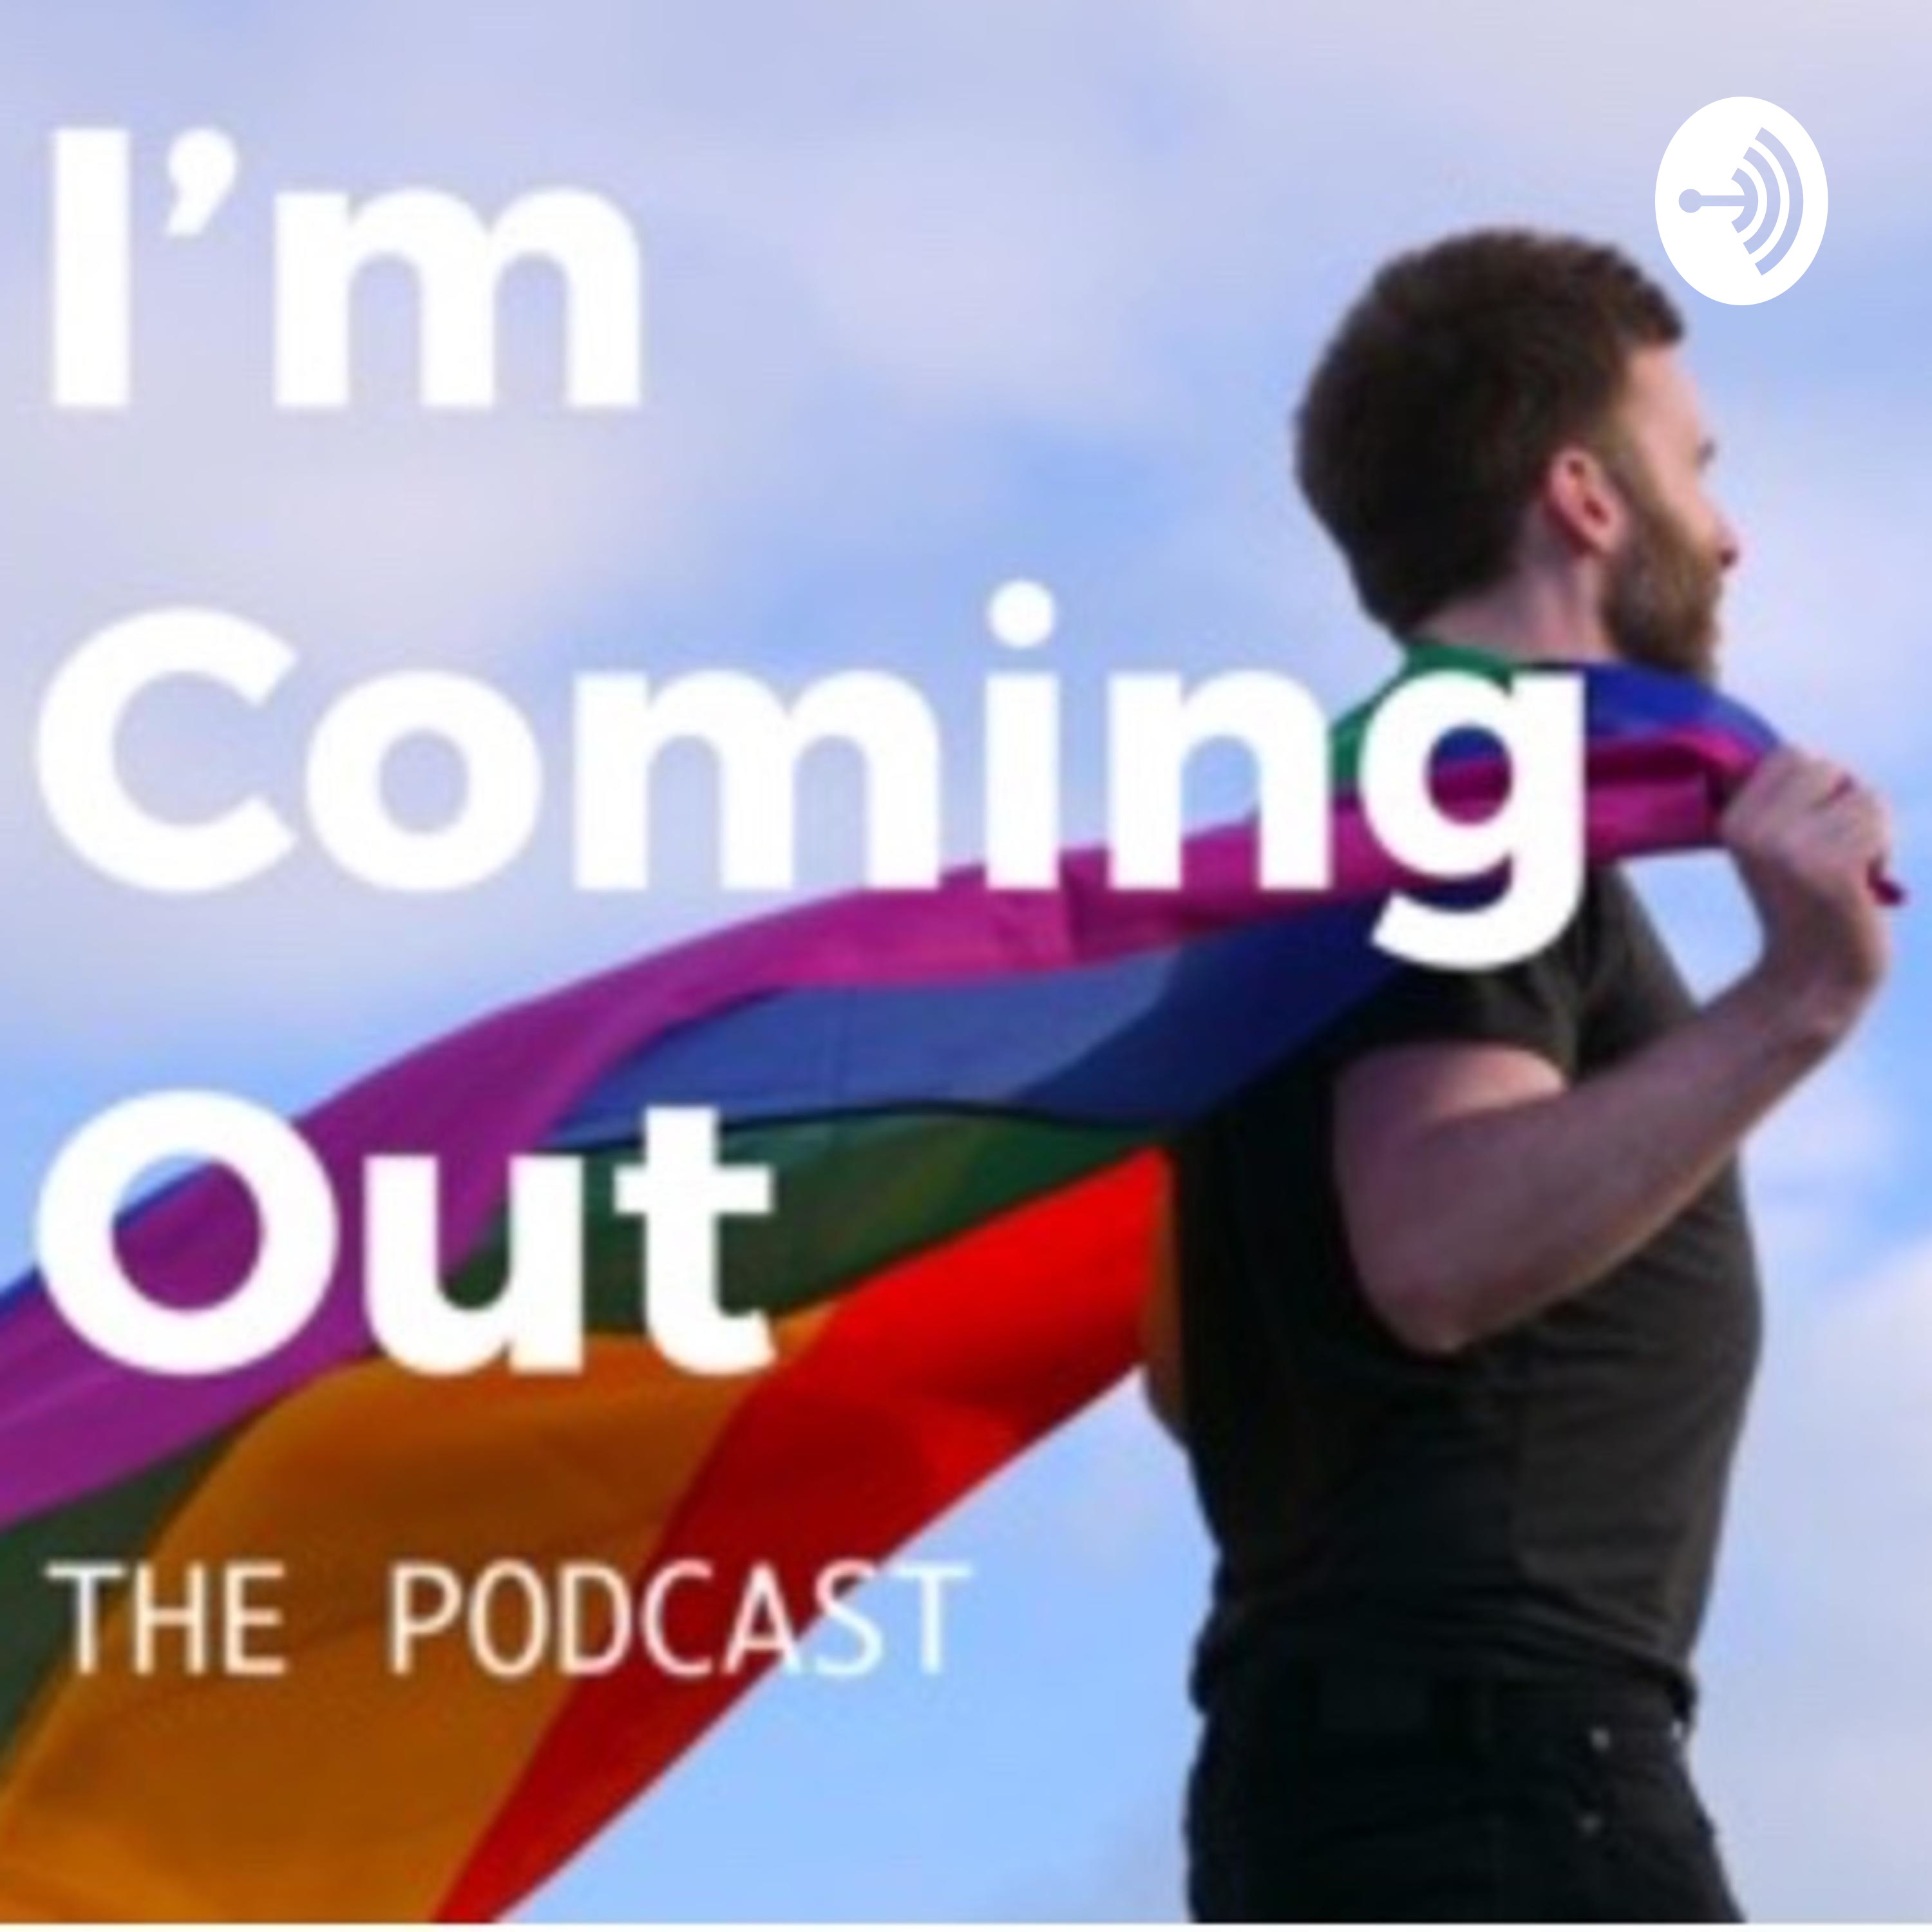 #4 Steven Carter Bailey on growing up gay & Mormon and his struggle with food addiction